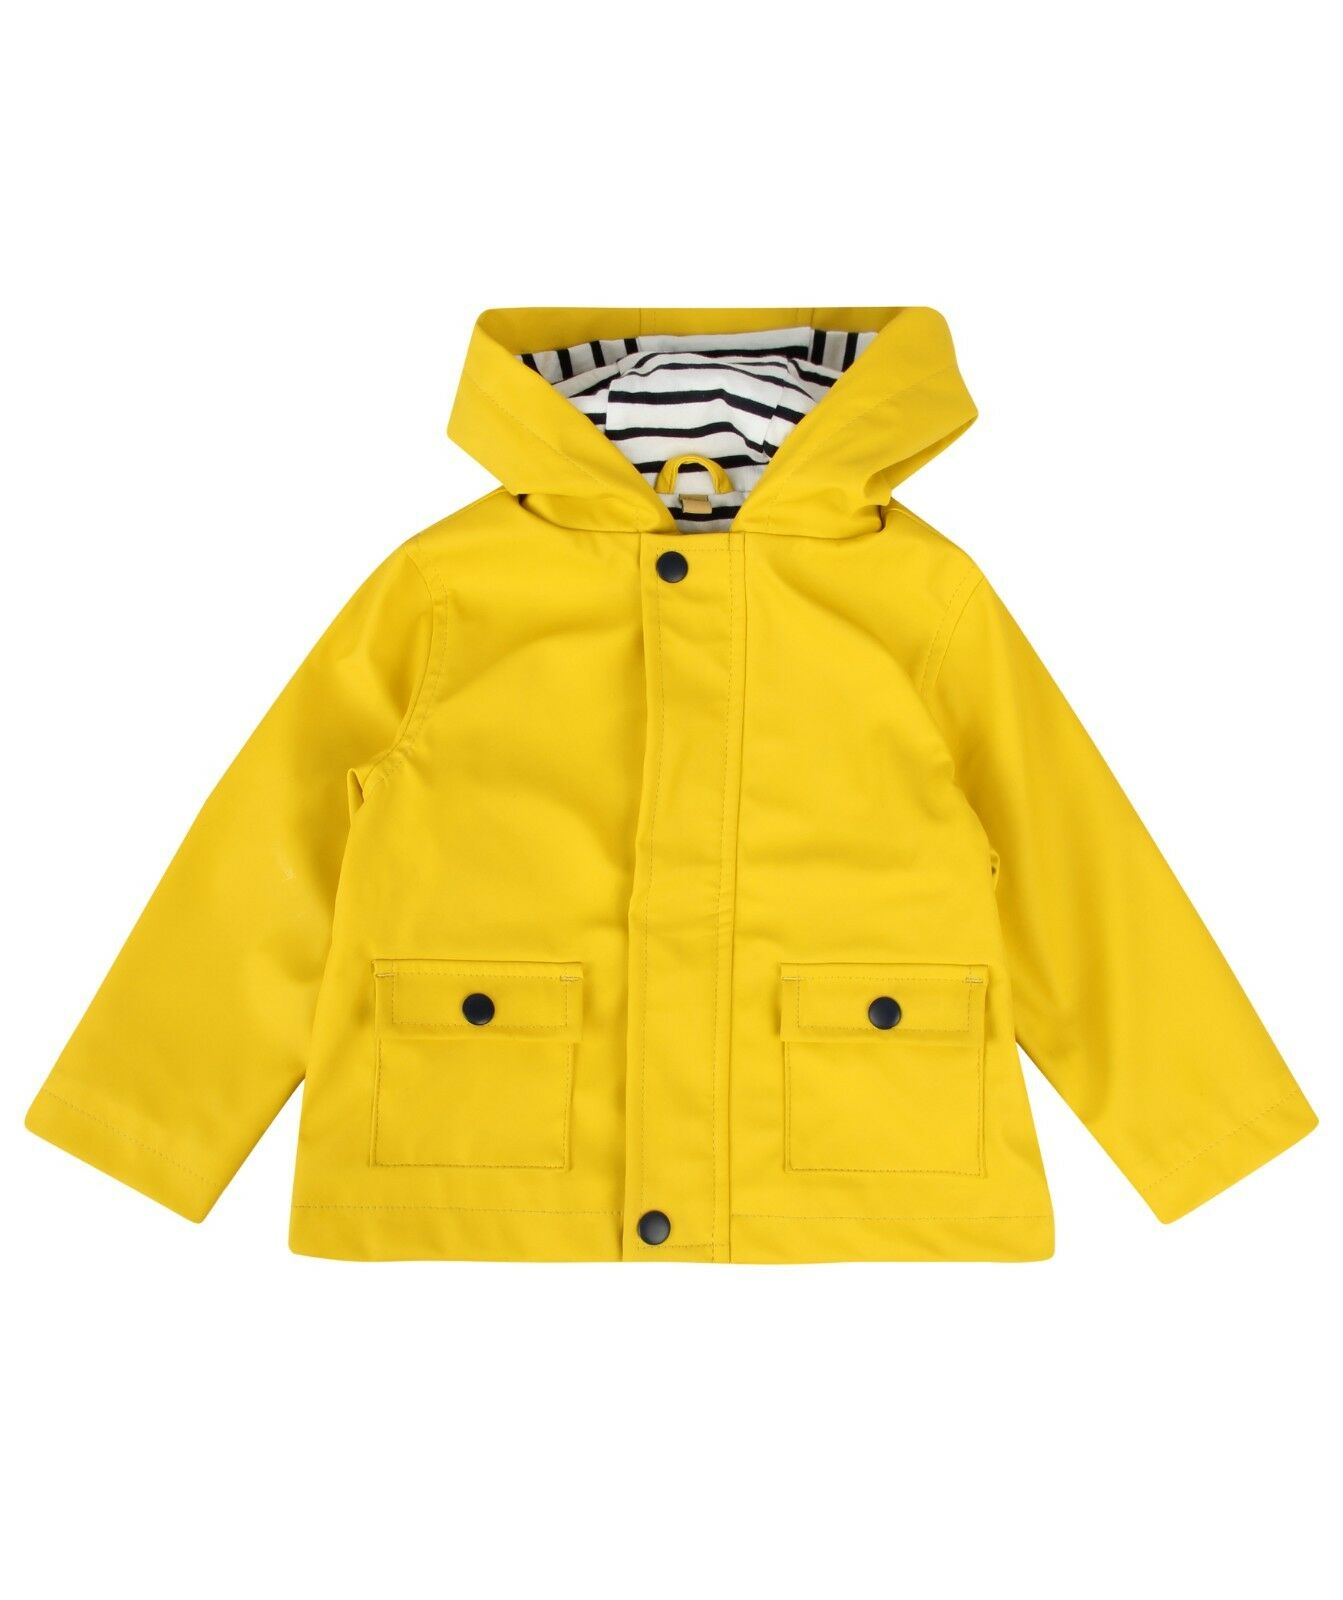 Toddler Jersey Lined Raincoat